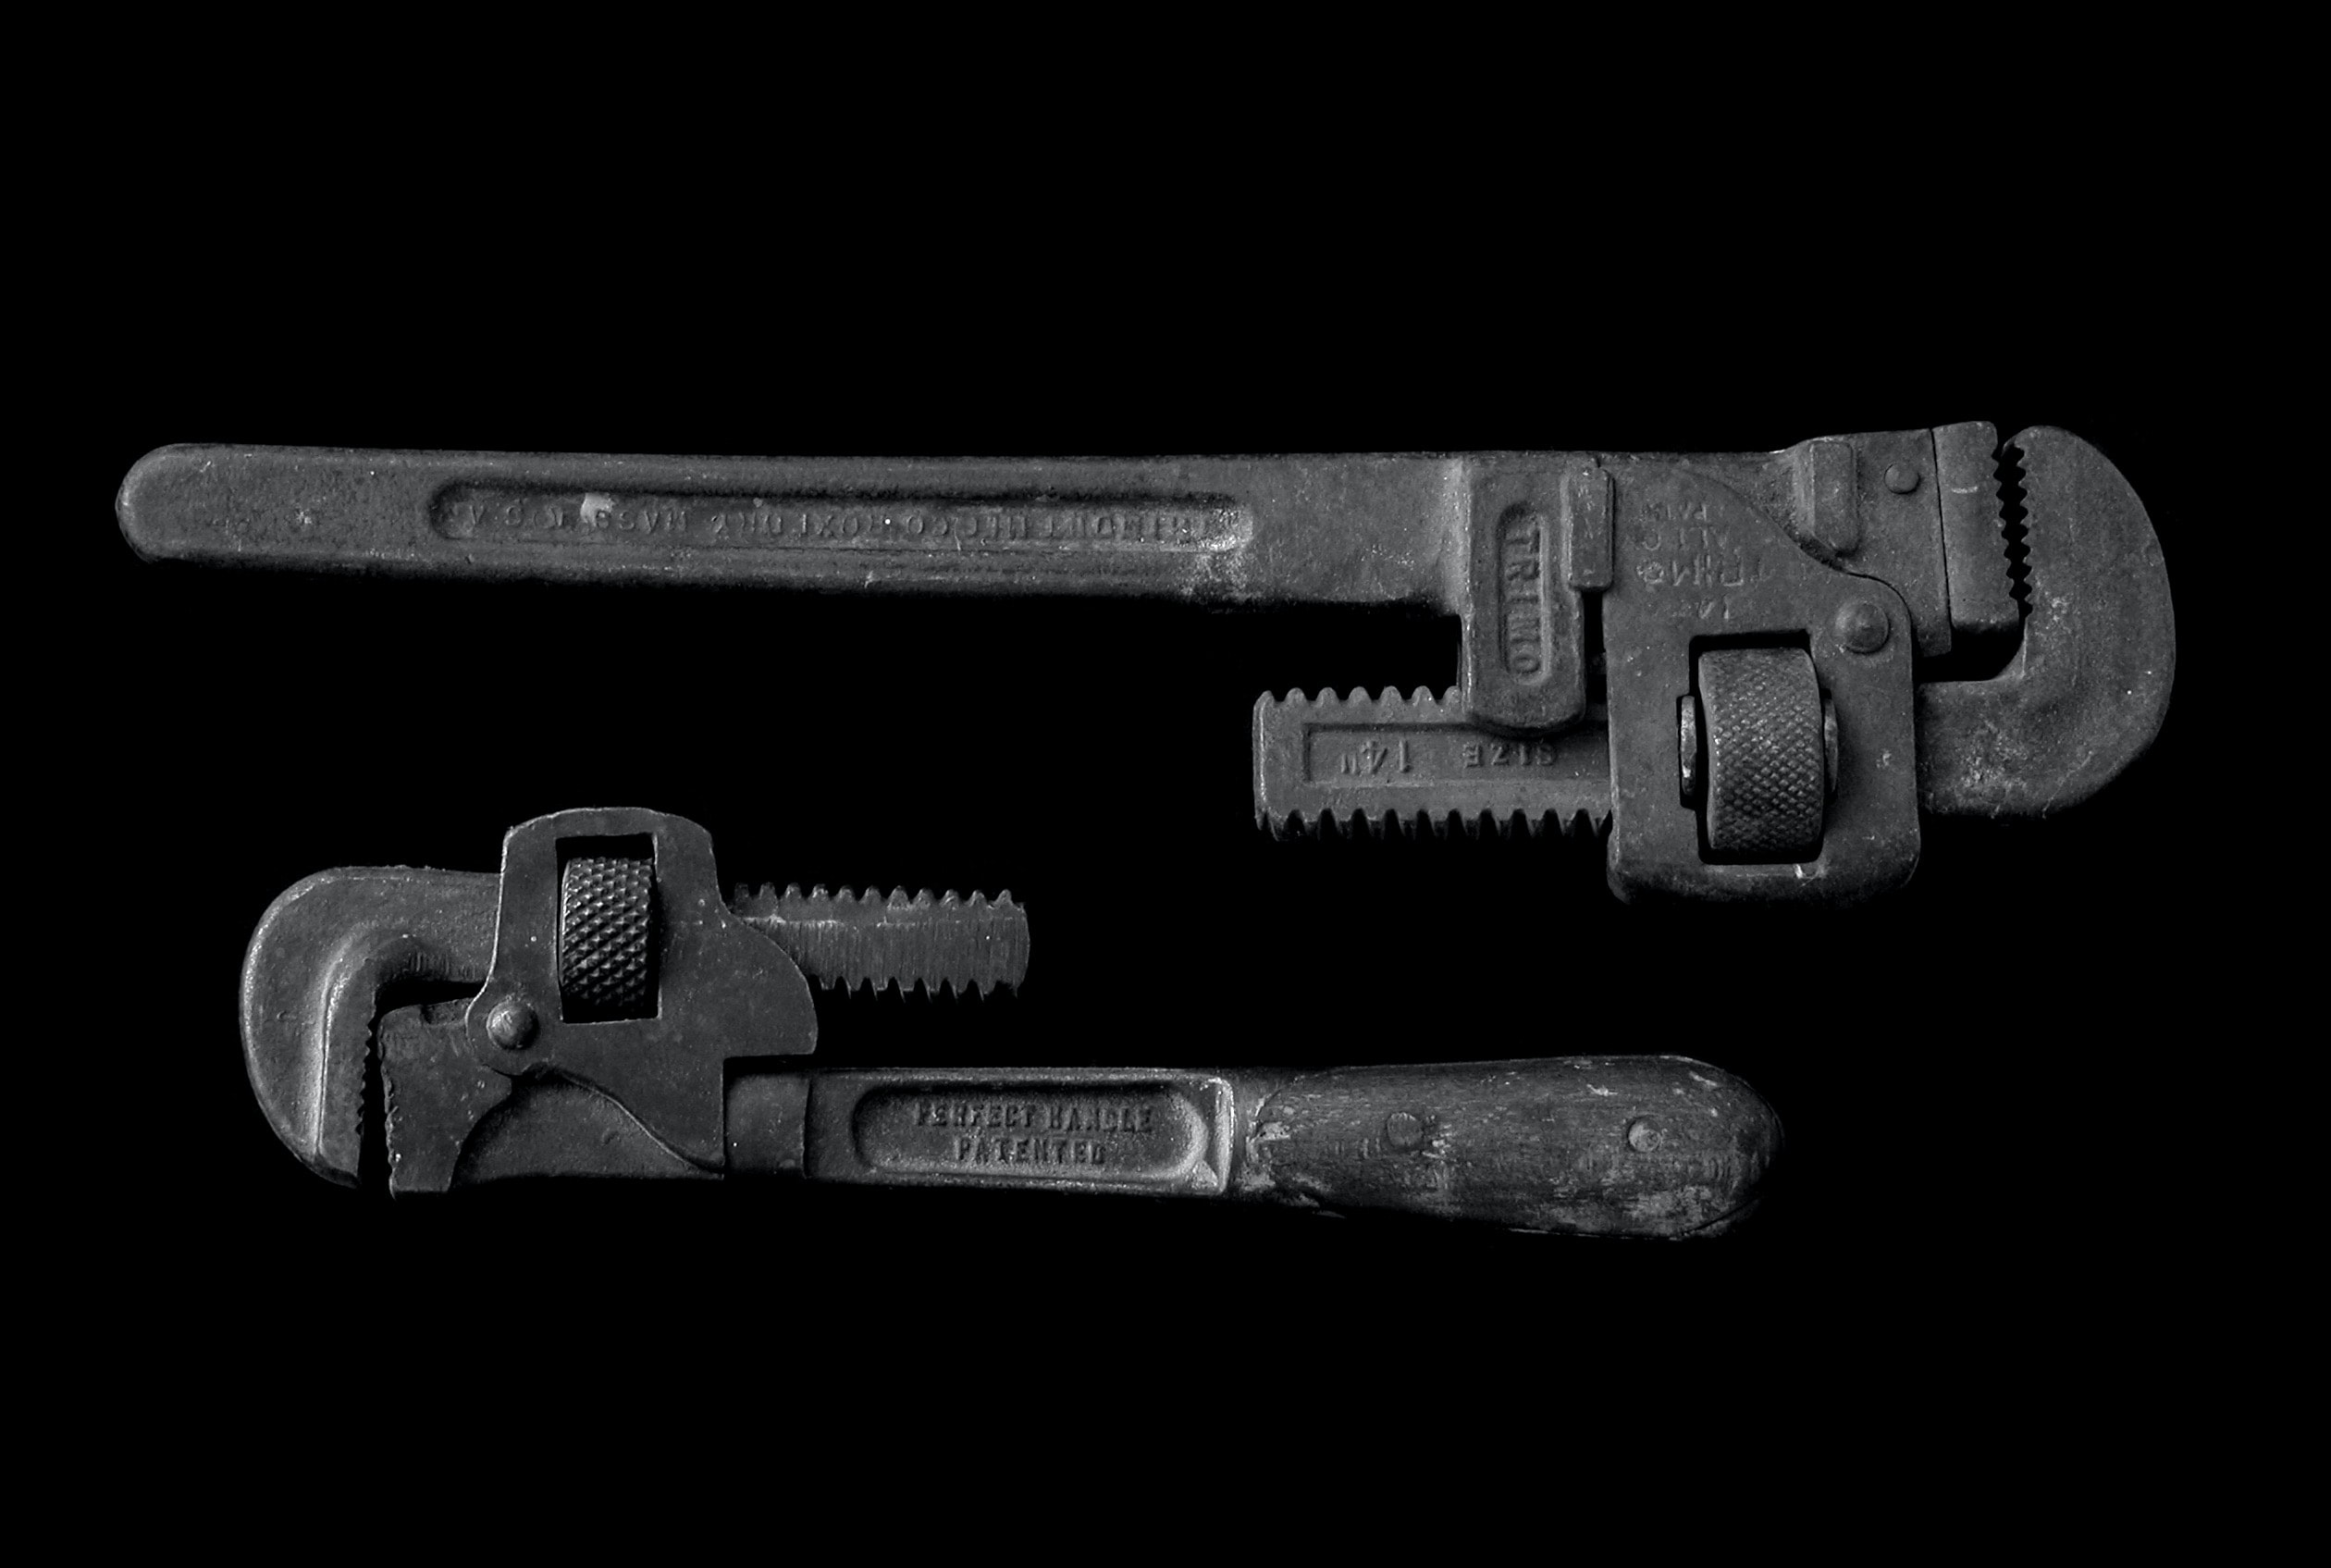 two black adjustable pipe wrenches